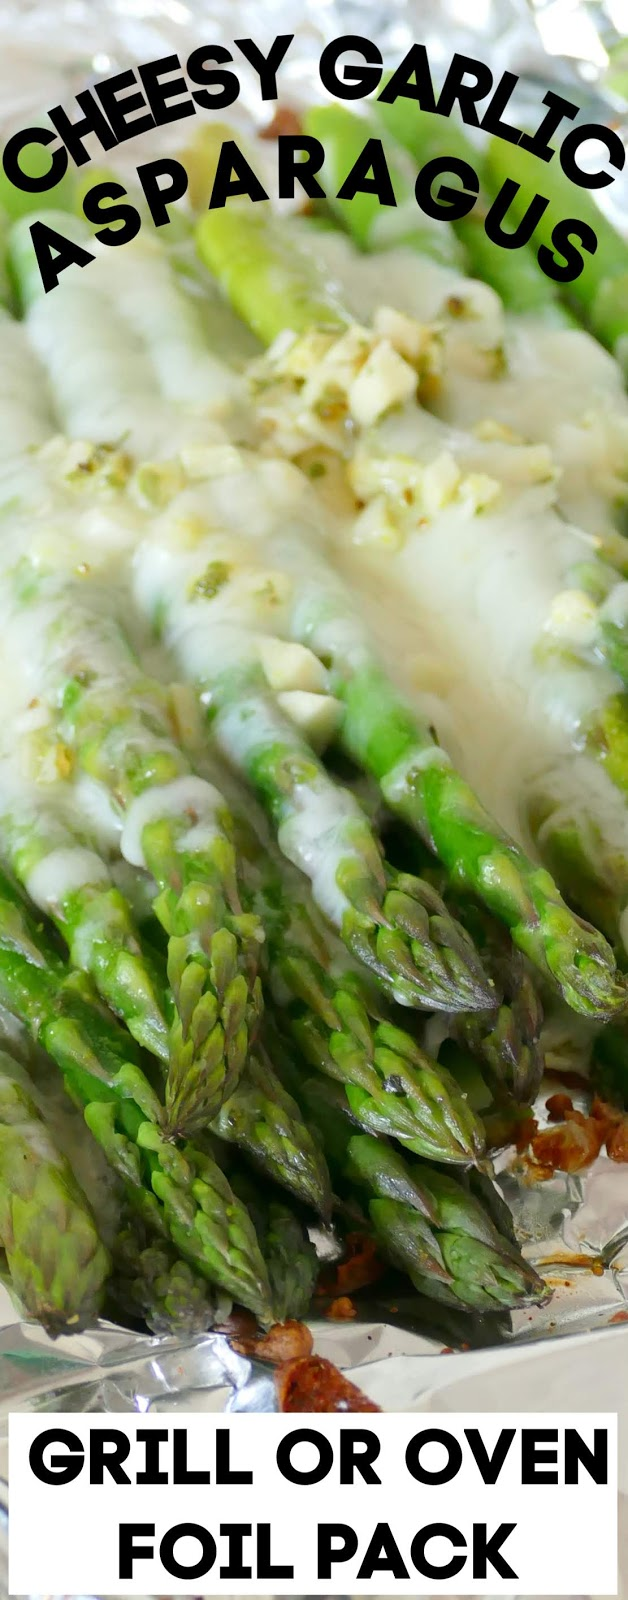 This side dish is simple to make on the grill or in the oven! It combines easy ingredients like asparagus, cheese, garlic, butter and seasonings for a mouthwatering side to go with chicken, beef, fish, seafood or pork! Great as a meatless meal too!